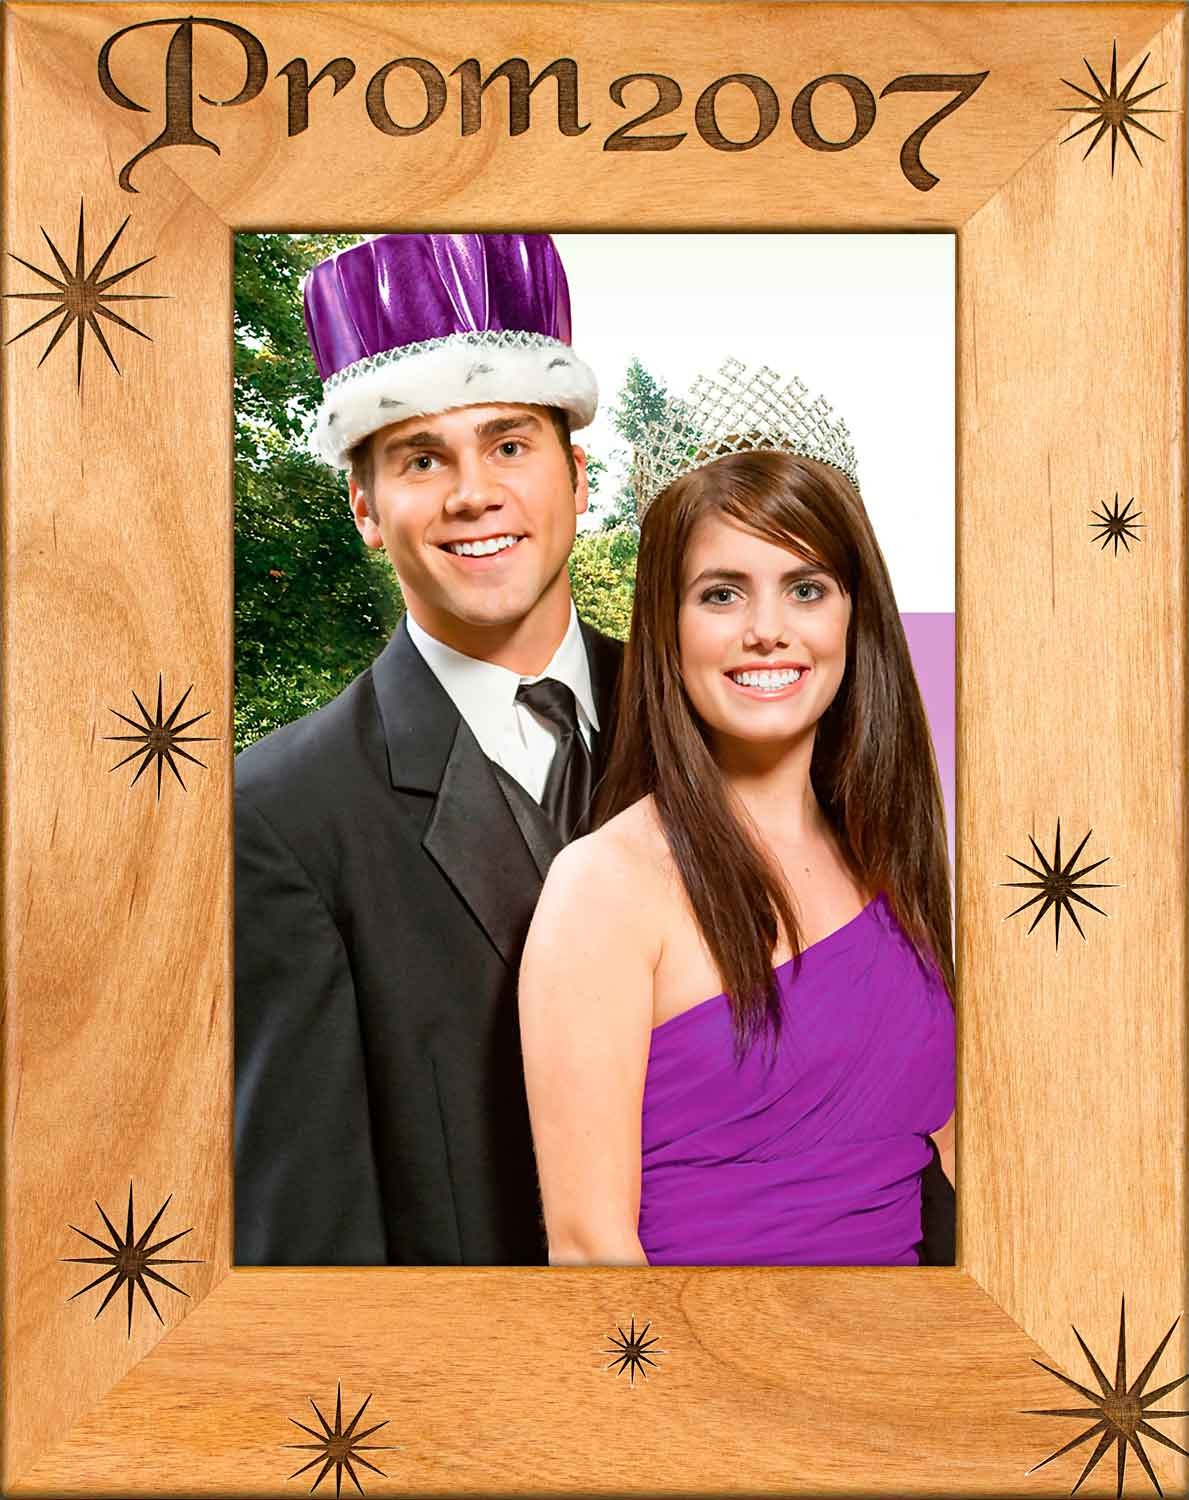 School Picture Frames - High School Prom - wooden photo frames